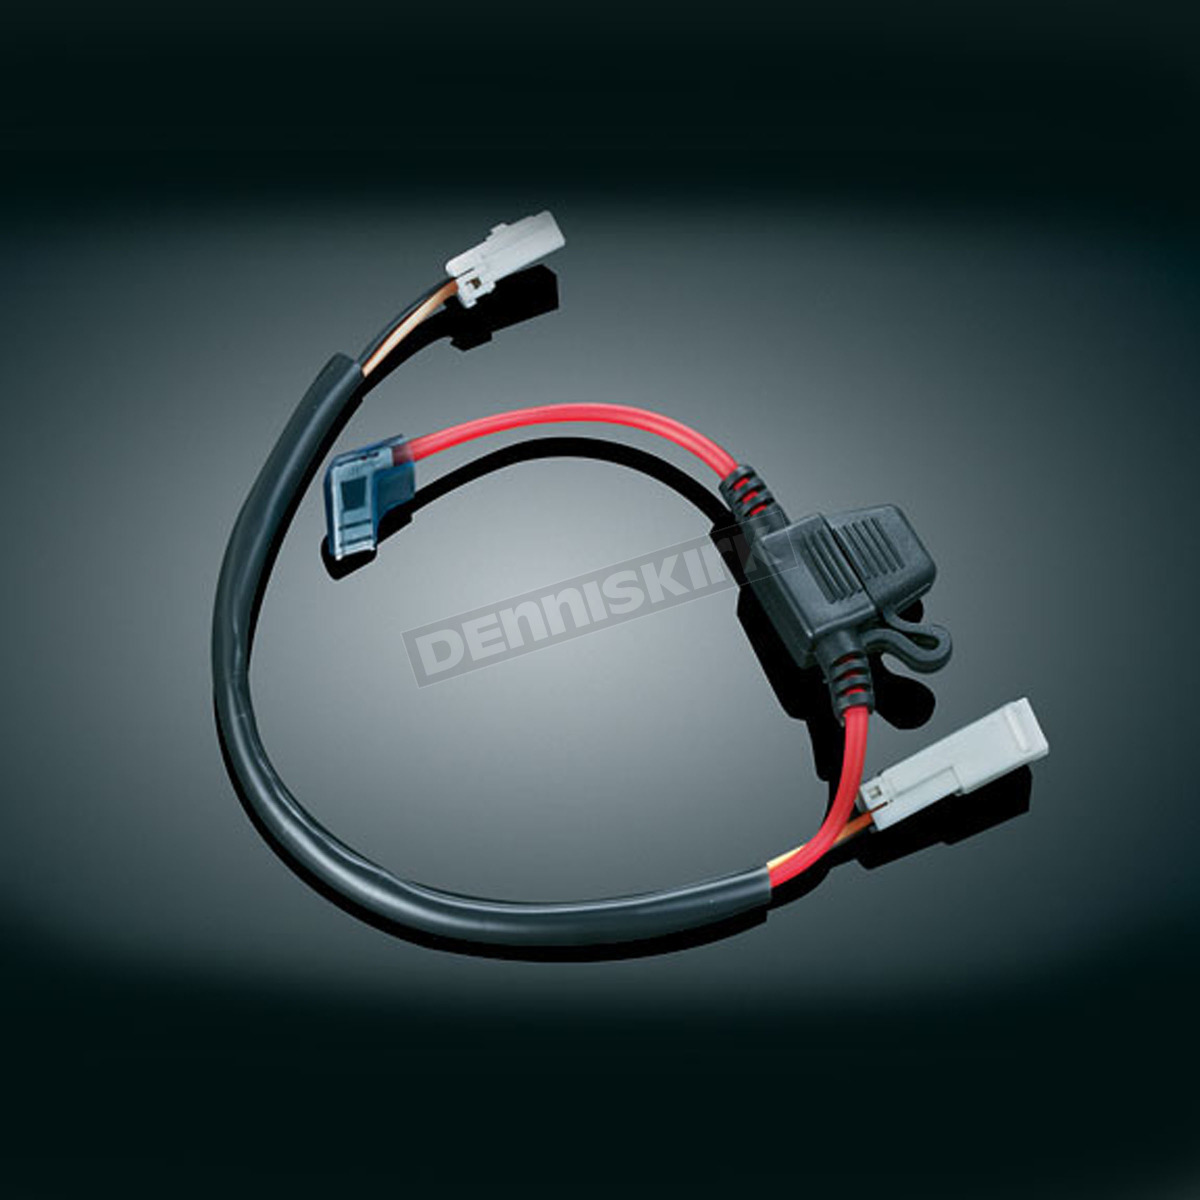 oe216796 kuryakyn total control passing lamp harness 5495 harley davidson wiring harness 1995 harley davidson softail at nearapp.co